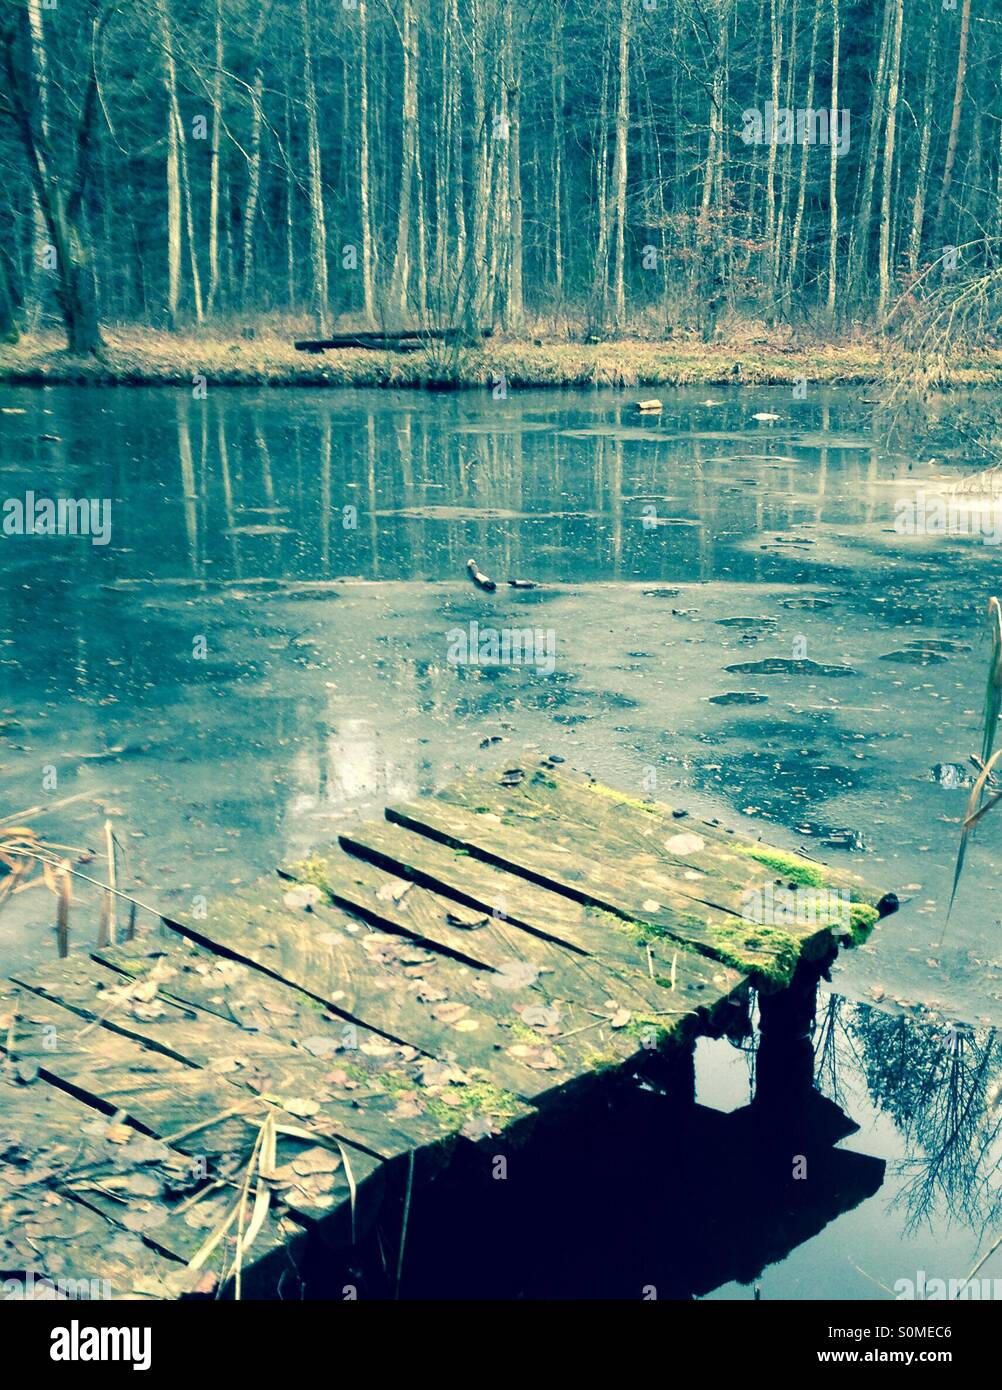 Tranquillity of forest pond - Stock Image